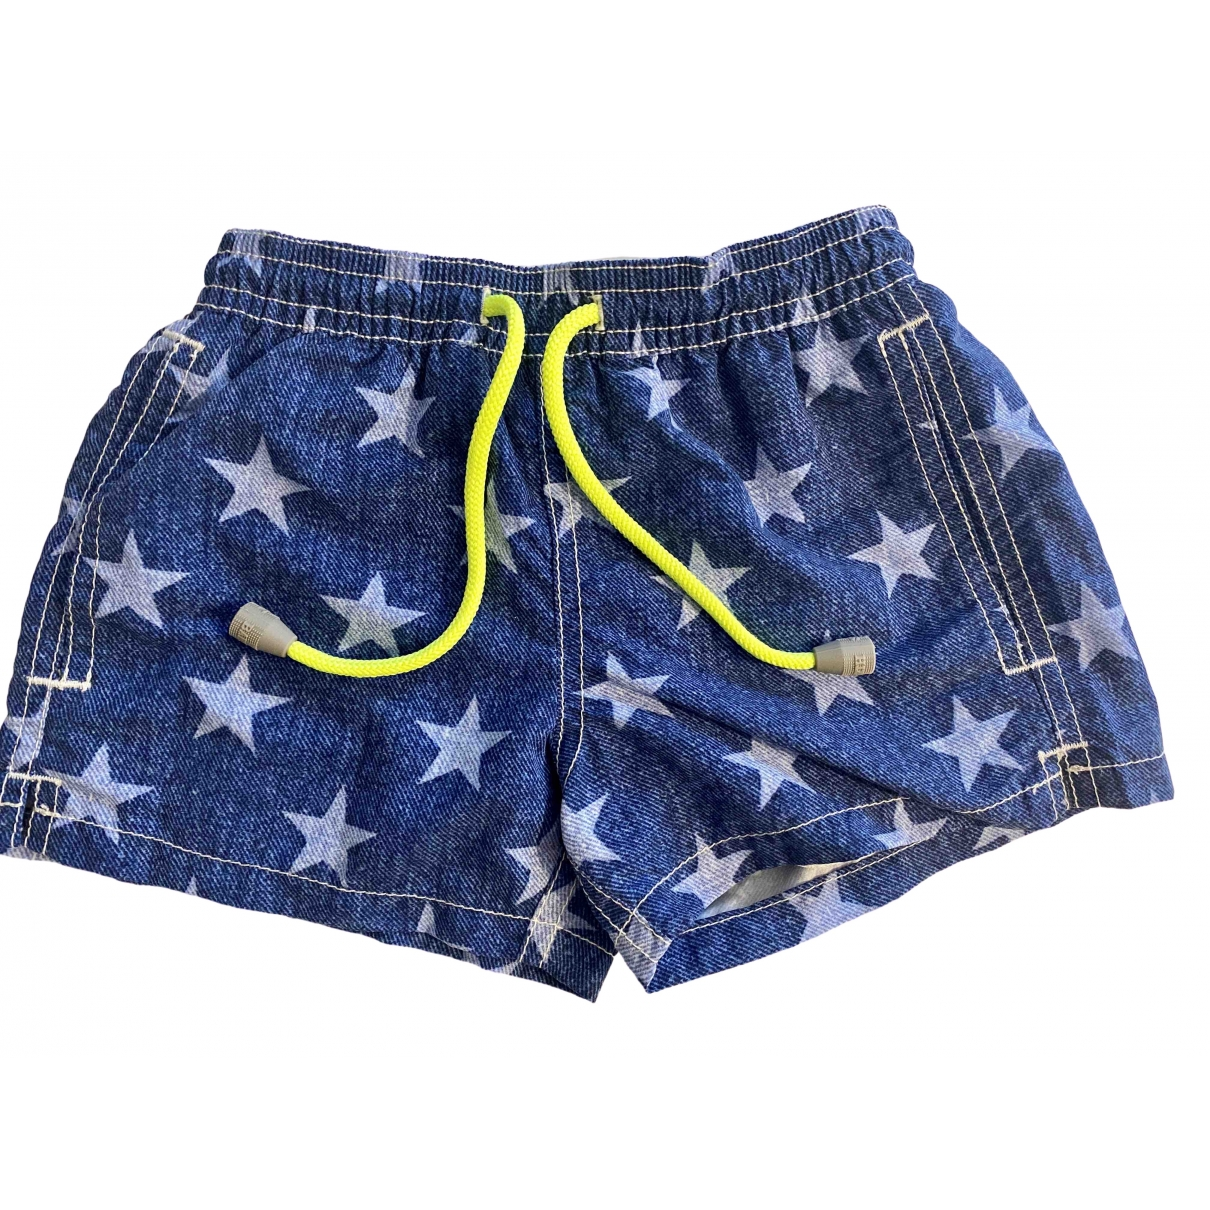 Mc2 Saint Barth \N Shorts for Kids 4 years - up to 102cm FR